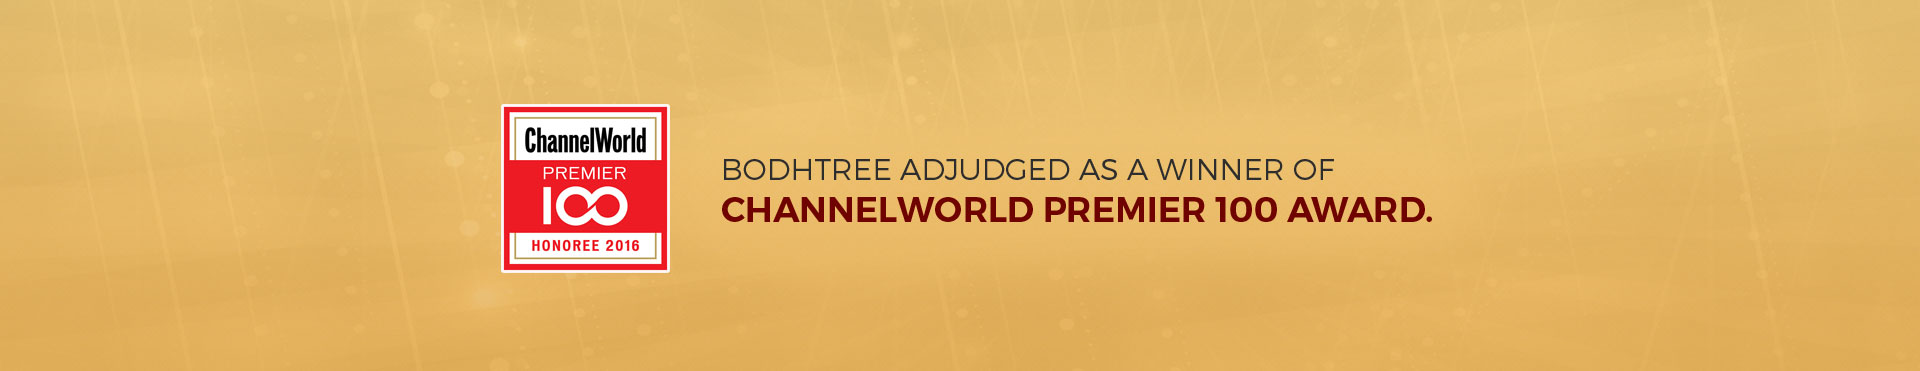 Bodhtree Adjudged as a winner of ChannelWorld Premier 100 Award